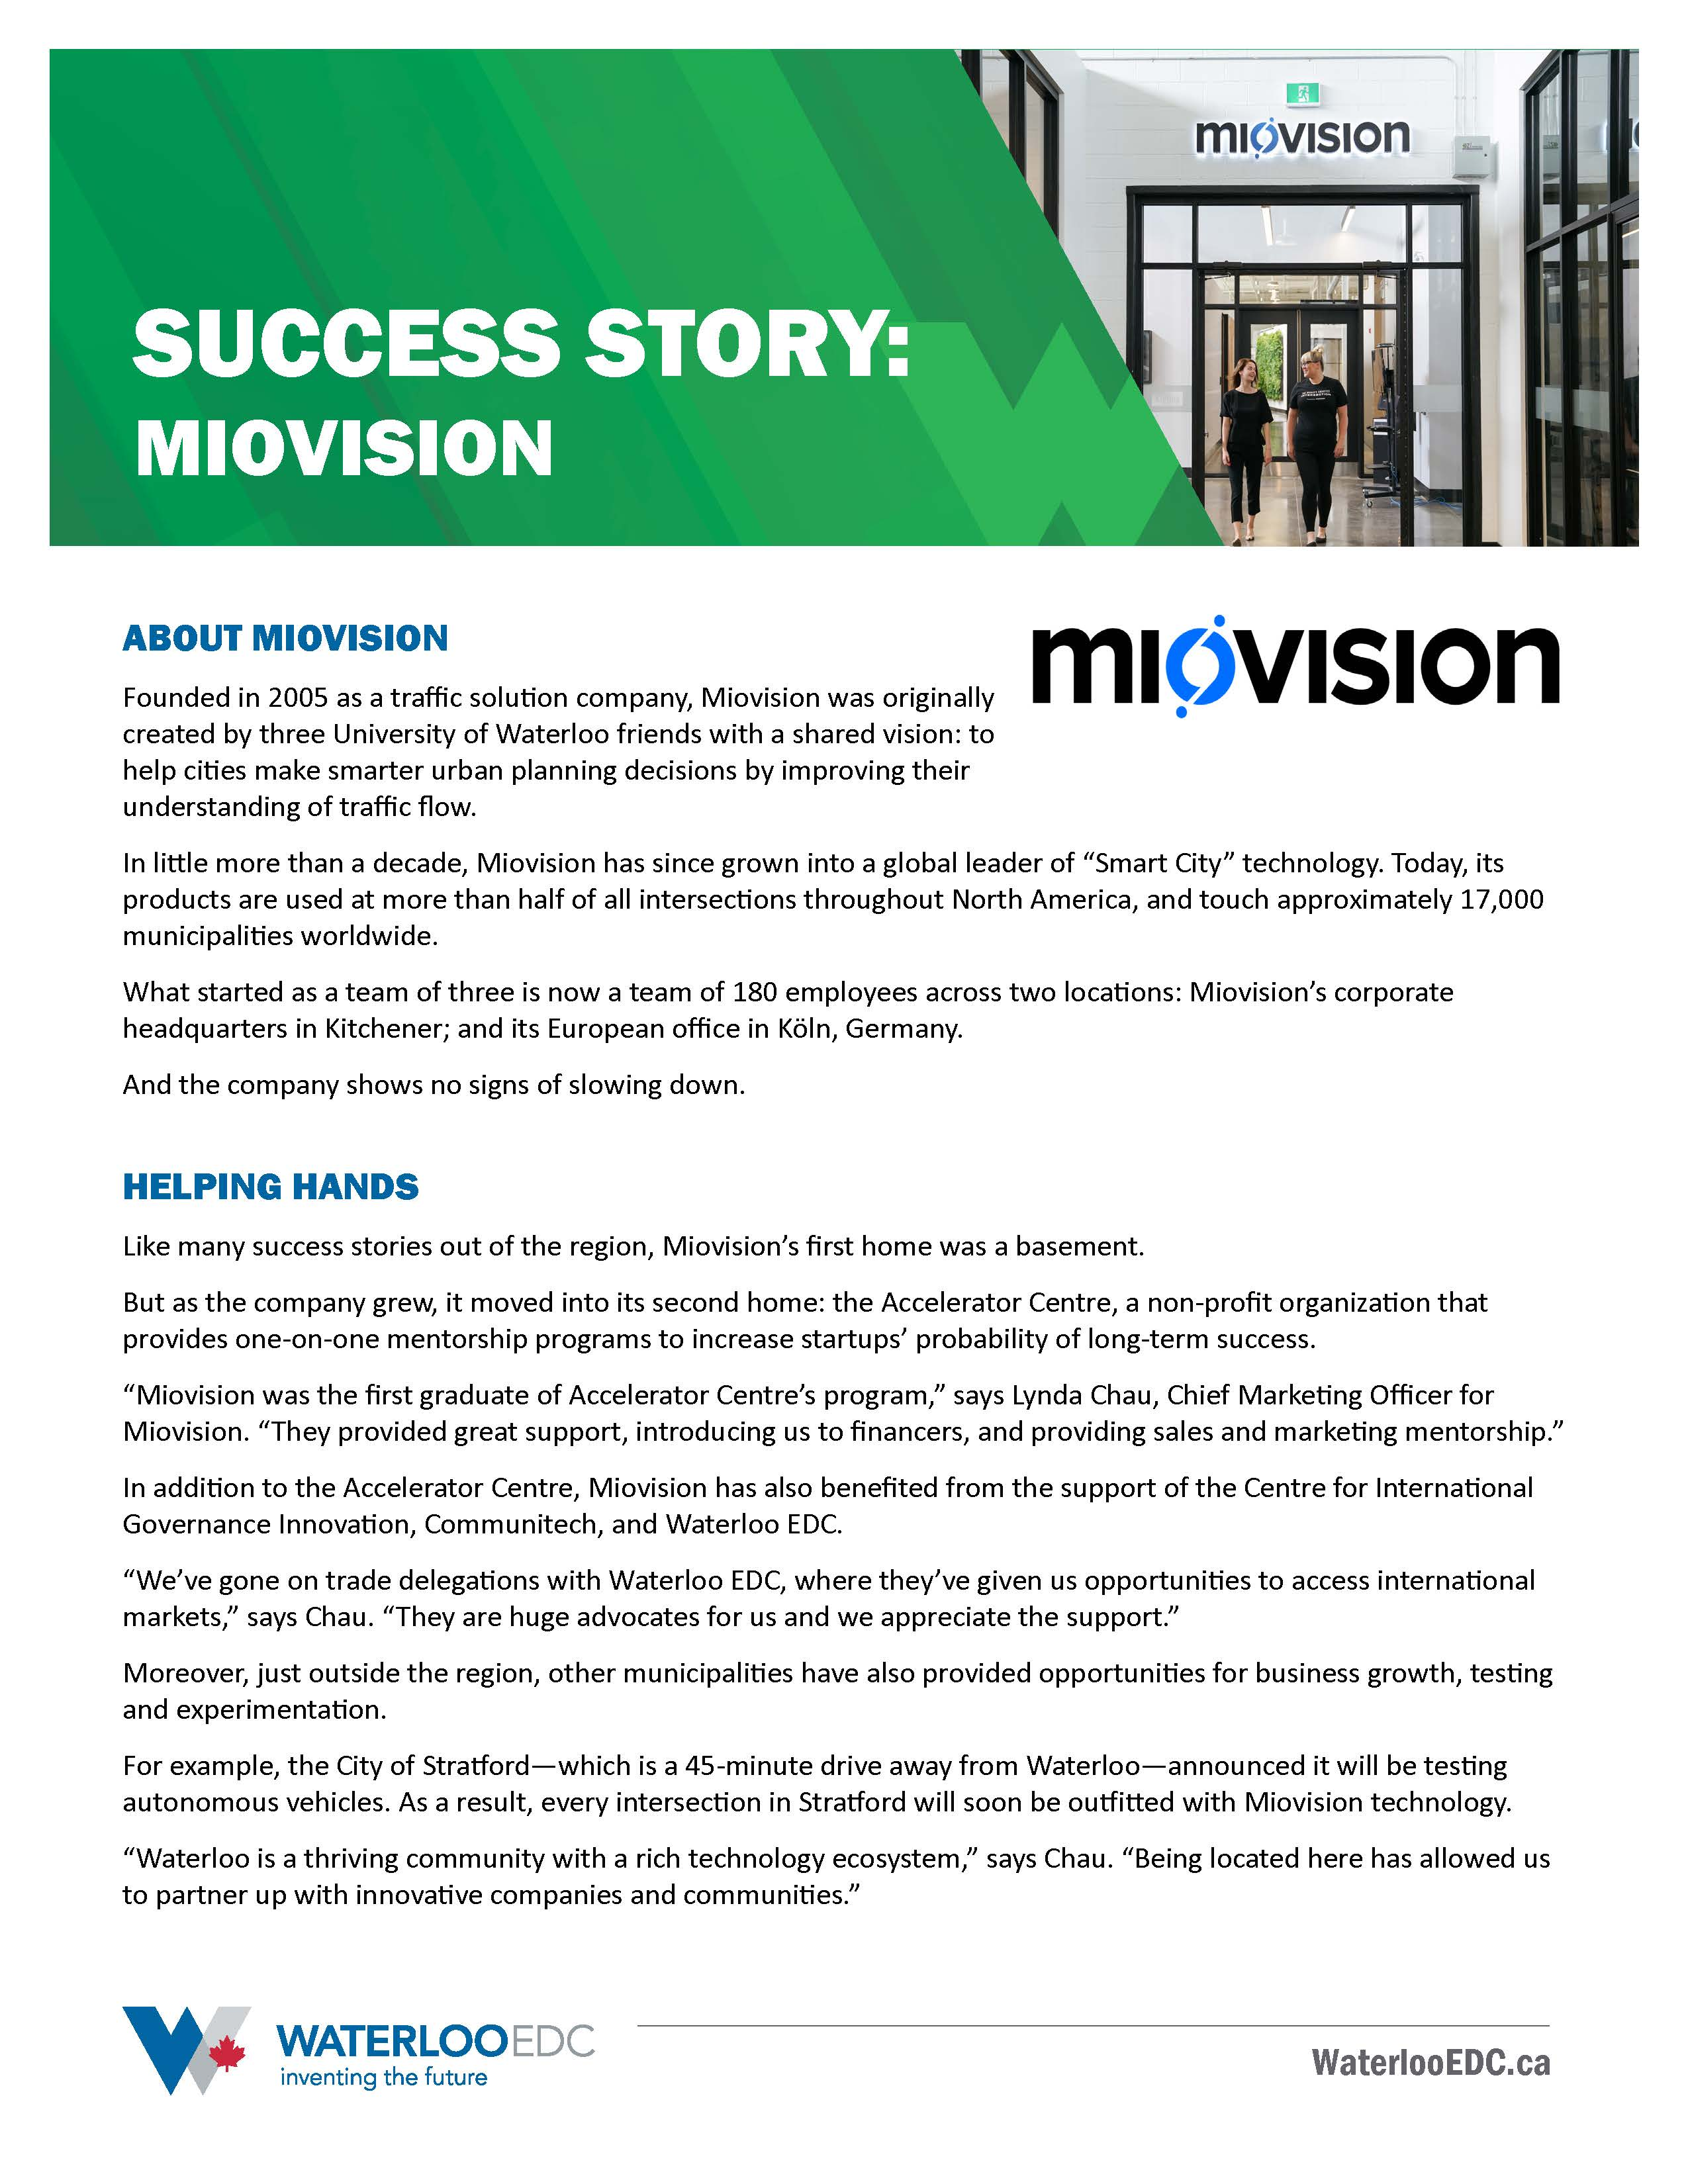 Success Story: Miovision